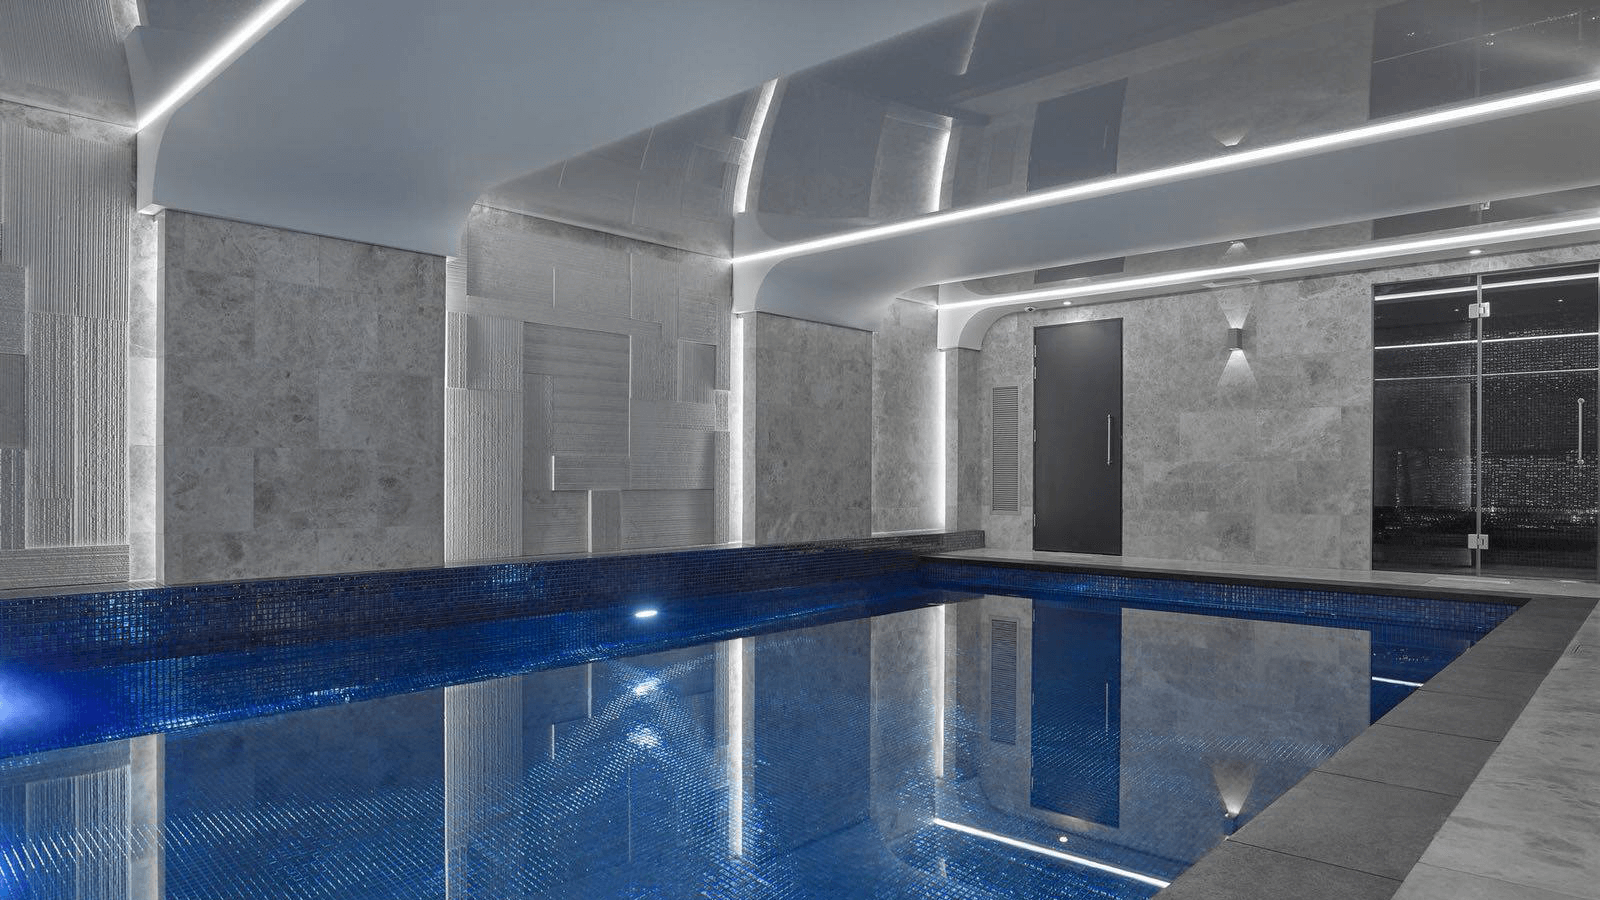 swimmingpool-linear-lighning-ceiling3.png